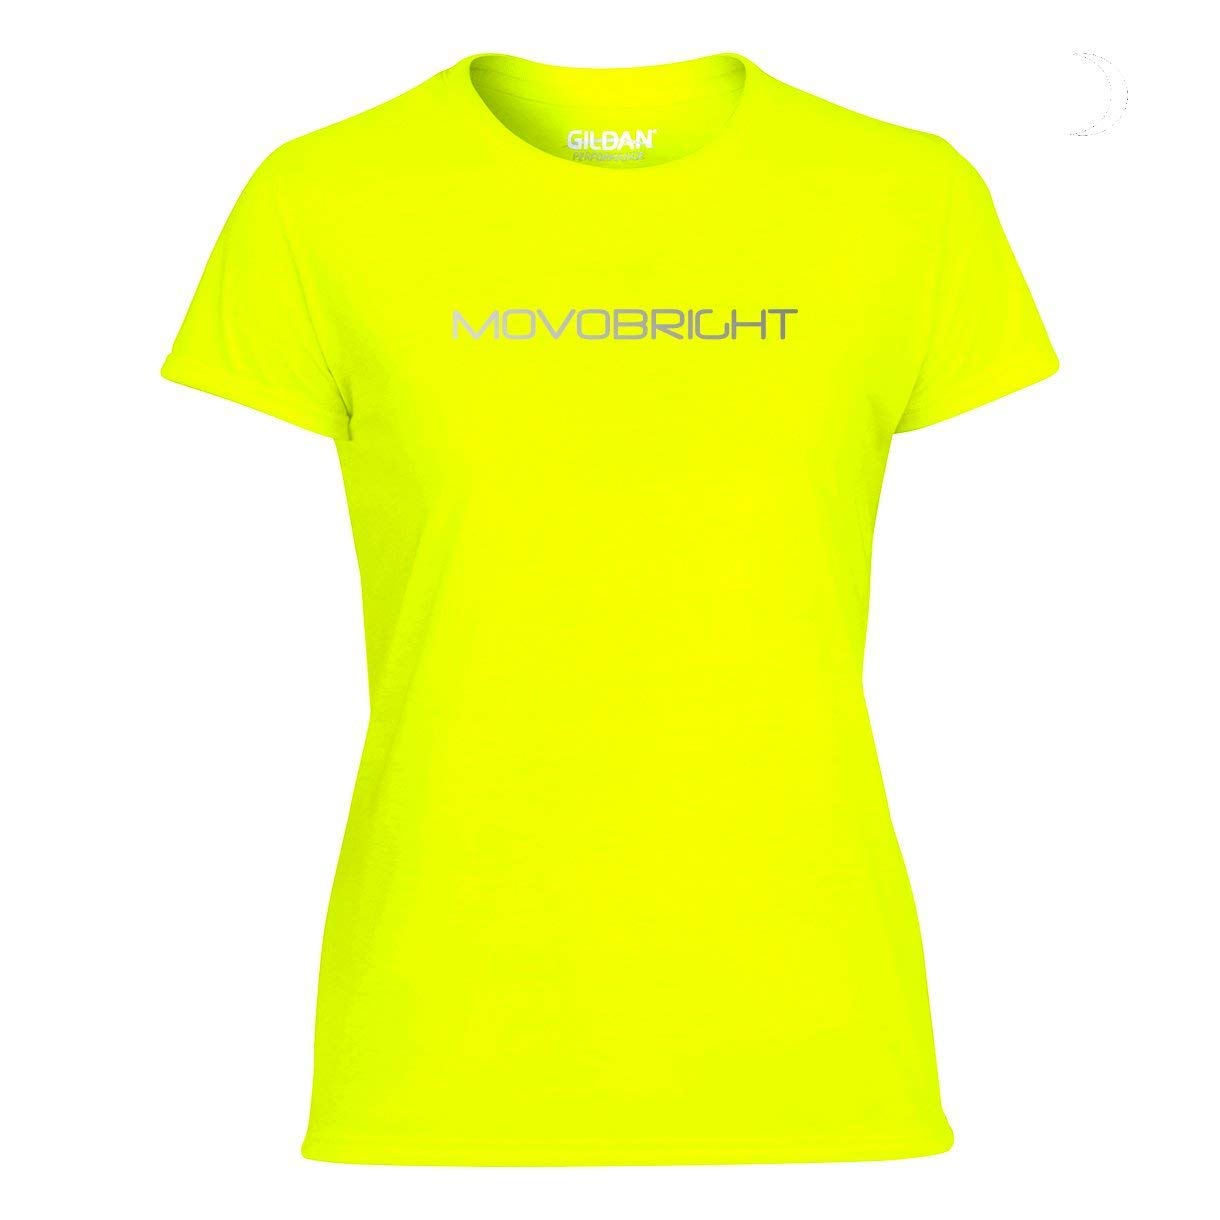 Ideal for Running Ladies Short Sleeve Reflective MovoBright Logo and Rear Detail 100/% Wicking Polyester for Max Cool Breathable Comfort. Womens Reflective Hi Viz Running T Shirt Top Cycling Exercise High Vis Reflective Logo and Detail Training Gym